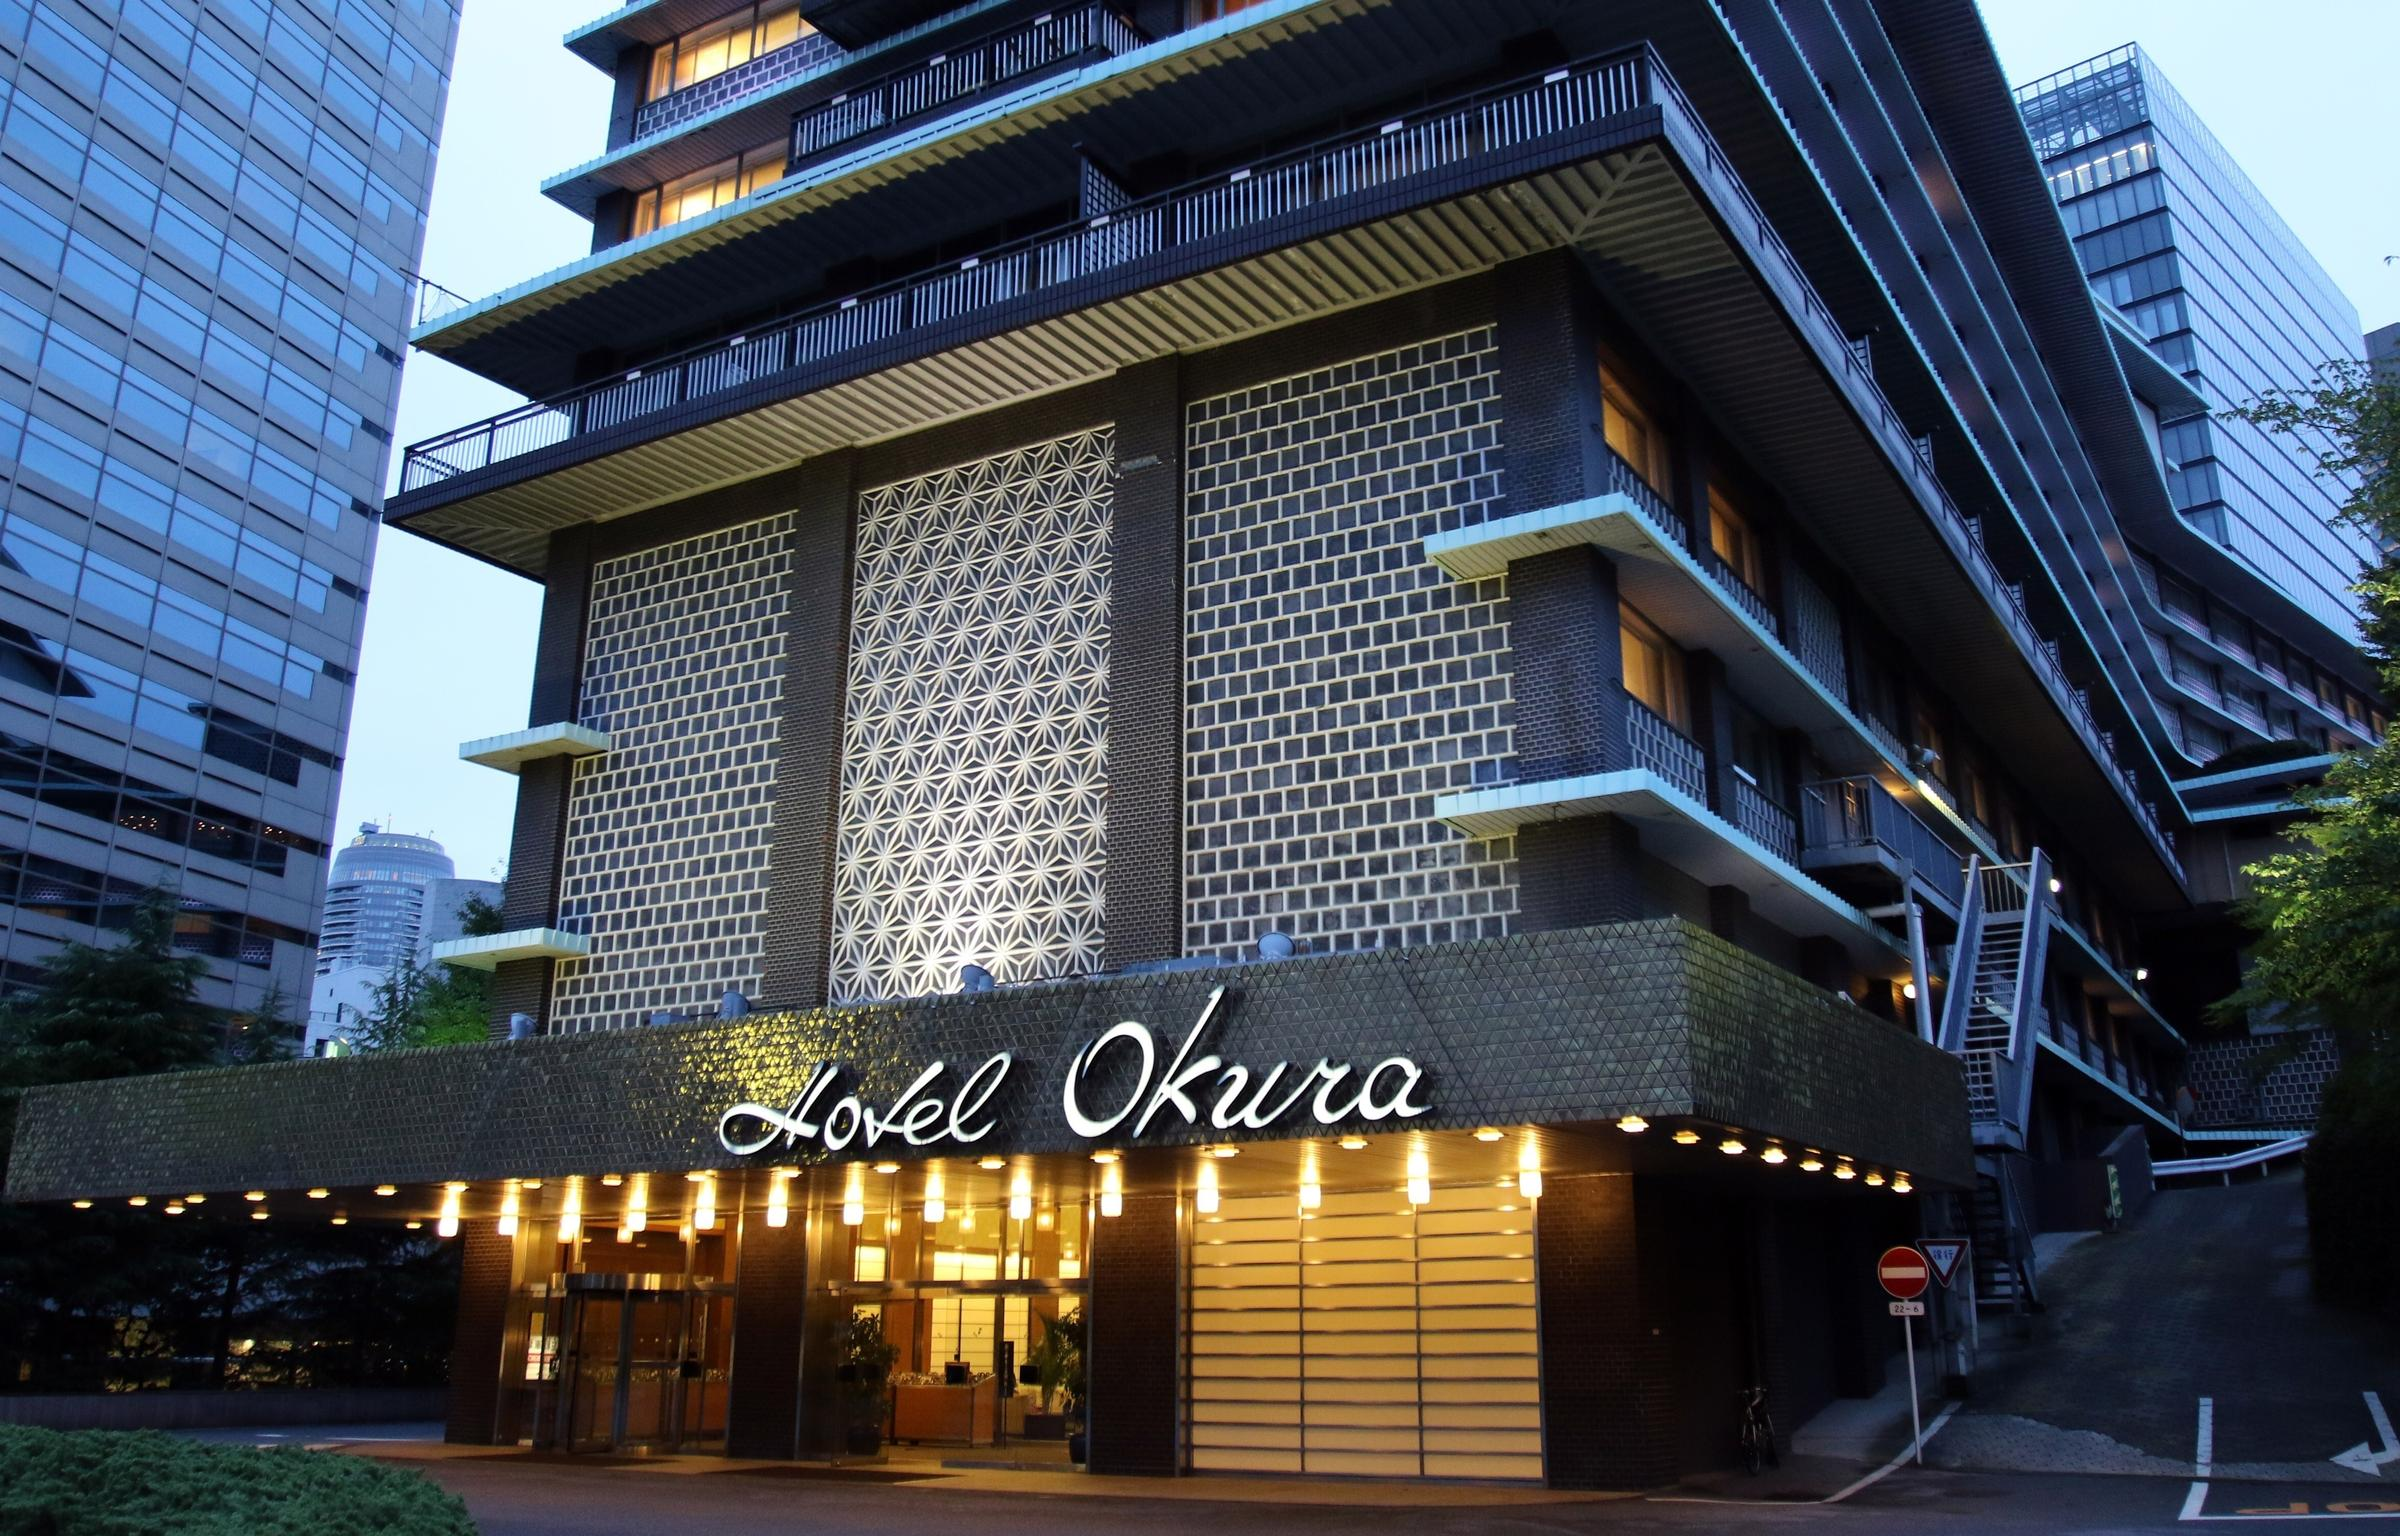 Workers are tearing down tokyo 39 s hotel okura and history for Hotels japon